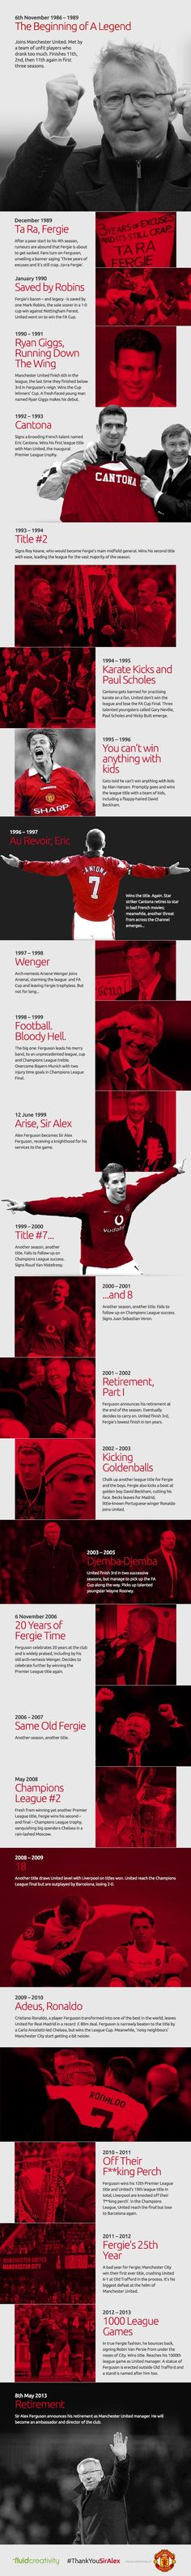 Soccer fans across the world were shocked at the sudden retirement of Sir Alex Ferguson, the legendary manager of Manchester United. This timeline infographic charts Fergie's 26 years of triumphs, tears and the infamous hairdryer treatment. Football Icon, Football Is Life, Best Football Team, Manchester United Fans, Top Soccer, Soccer Fans, Football Workouts, Eric Cantona, Sir Alex Ferguson